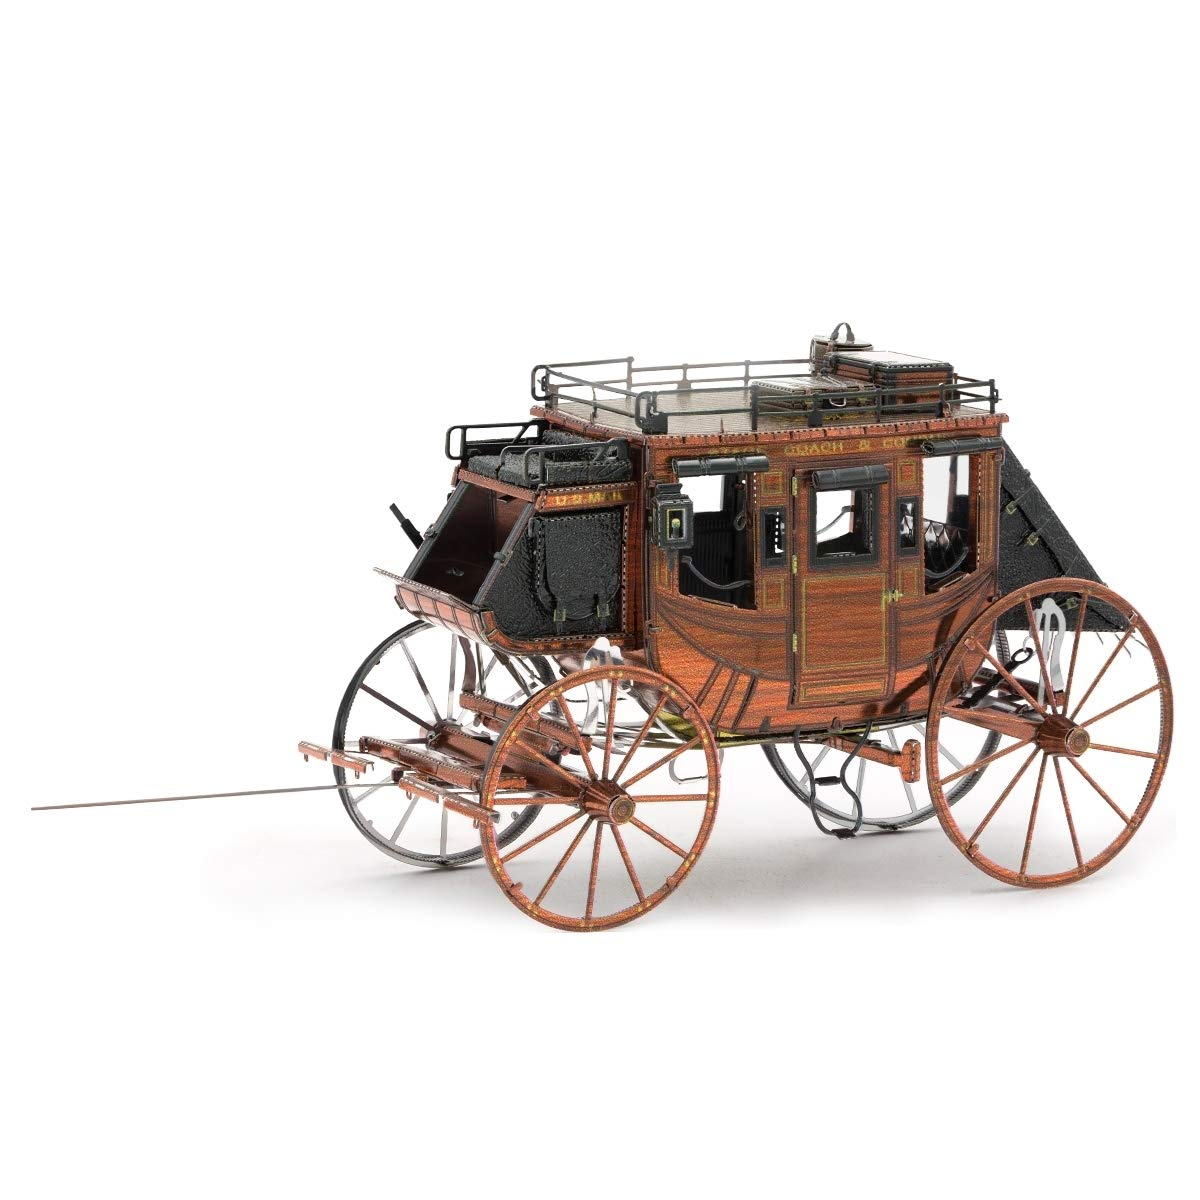 Fascinations Metal Earth Wild West Stagecoach 3D Metal Model Kit by Fascinations